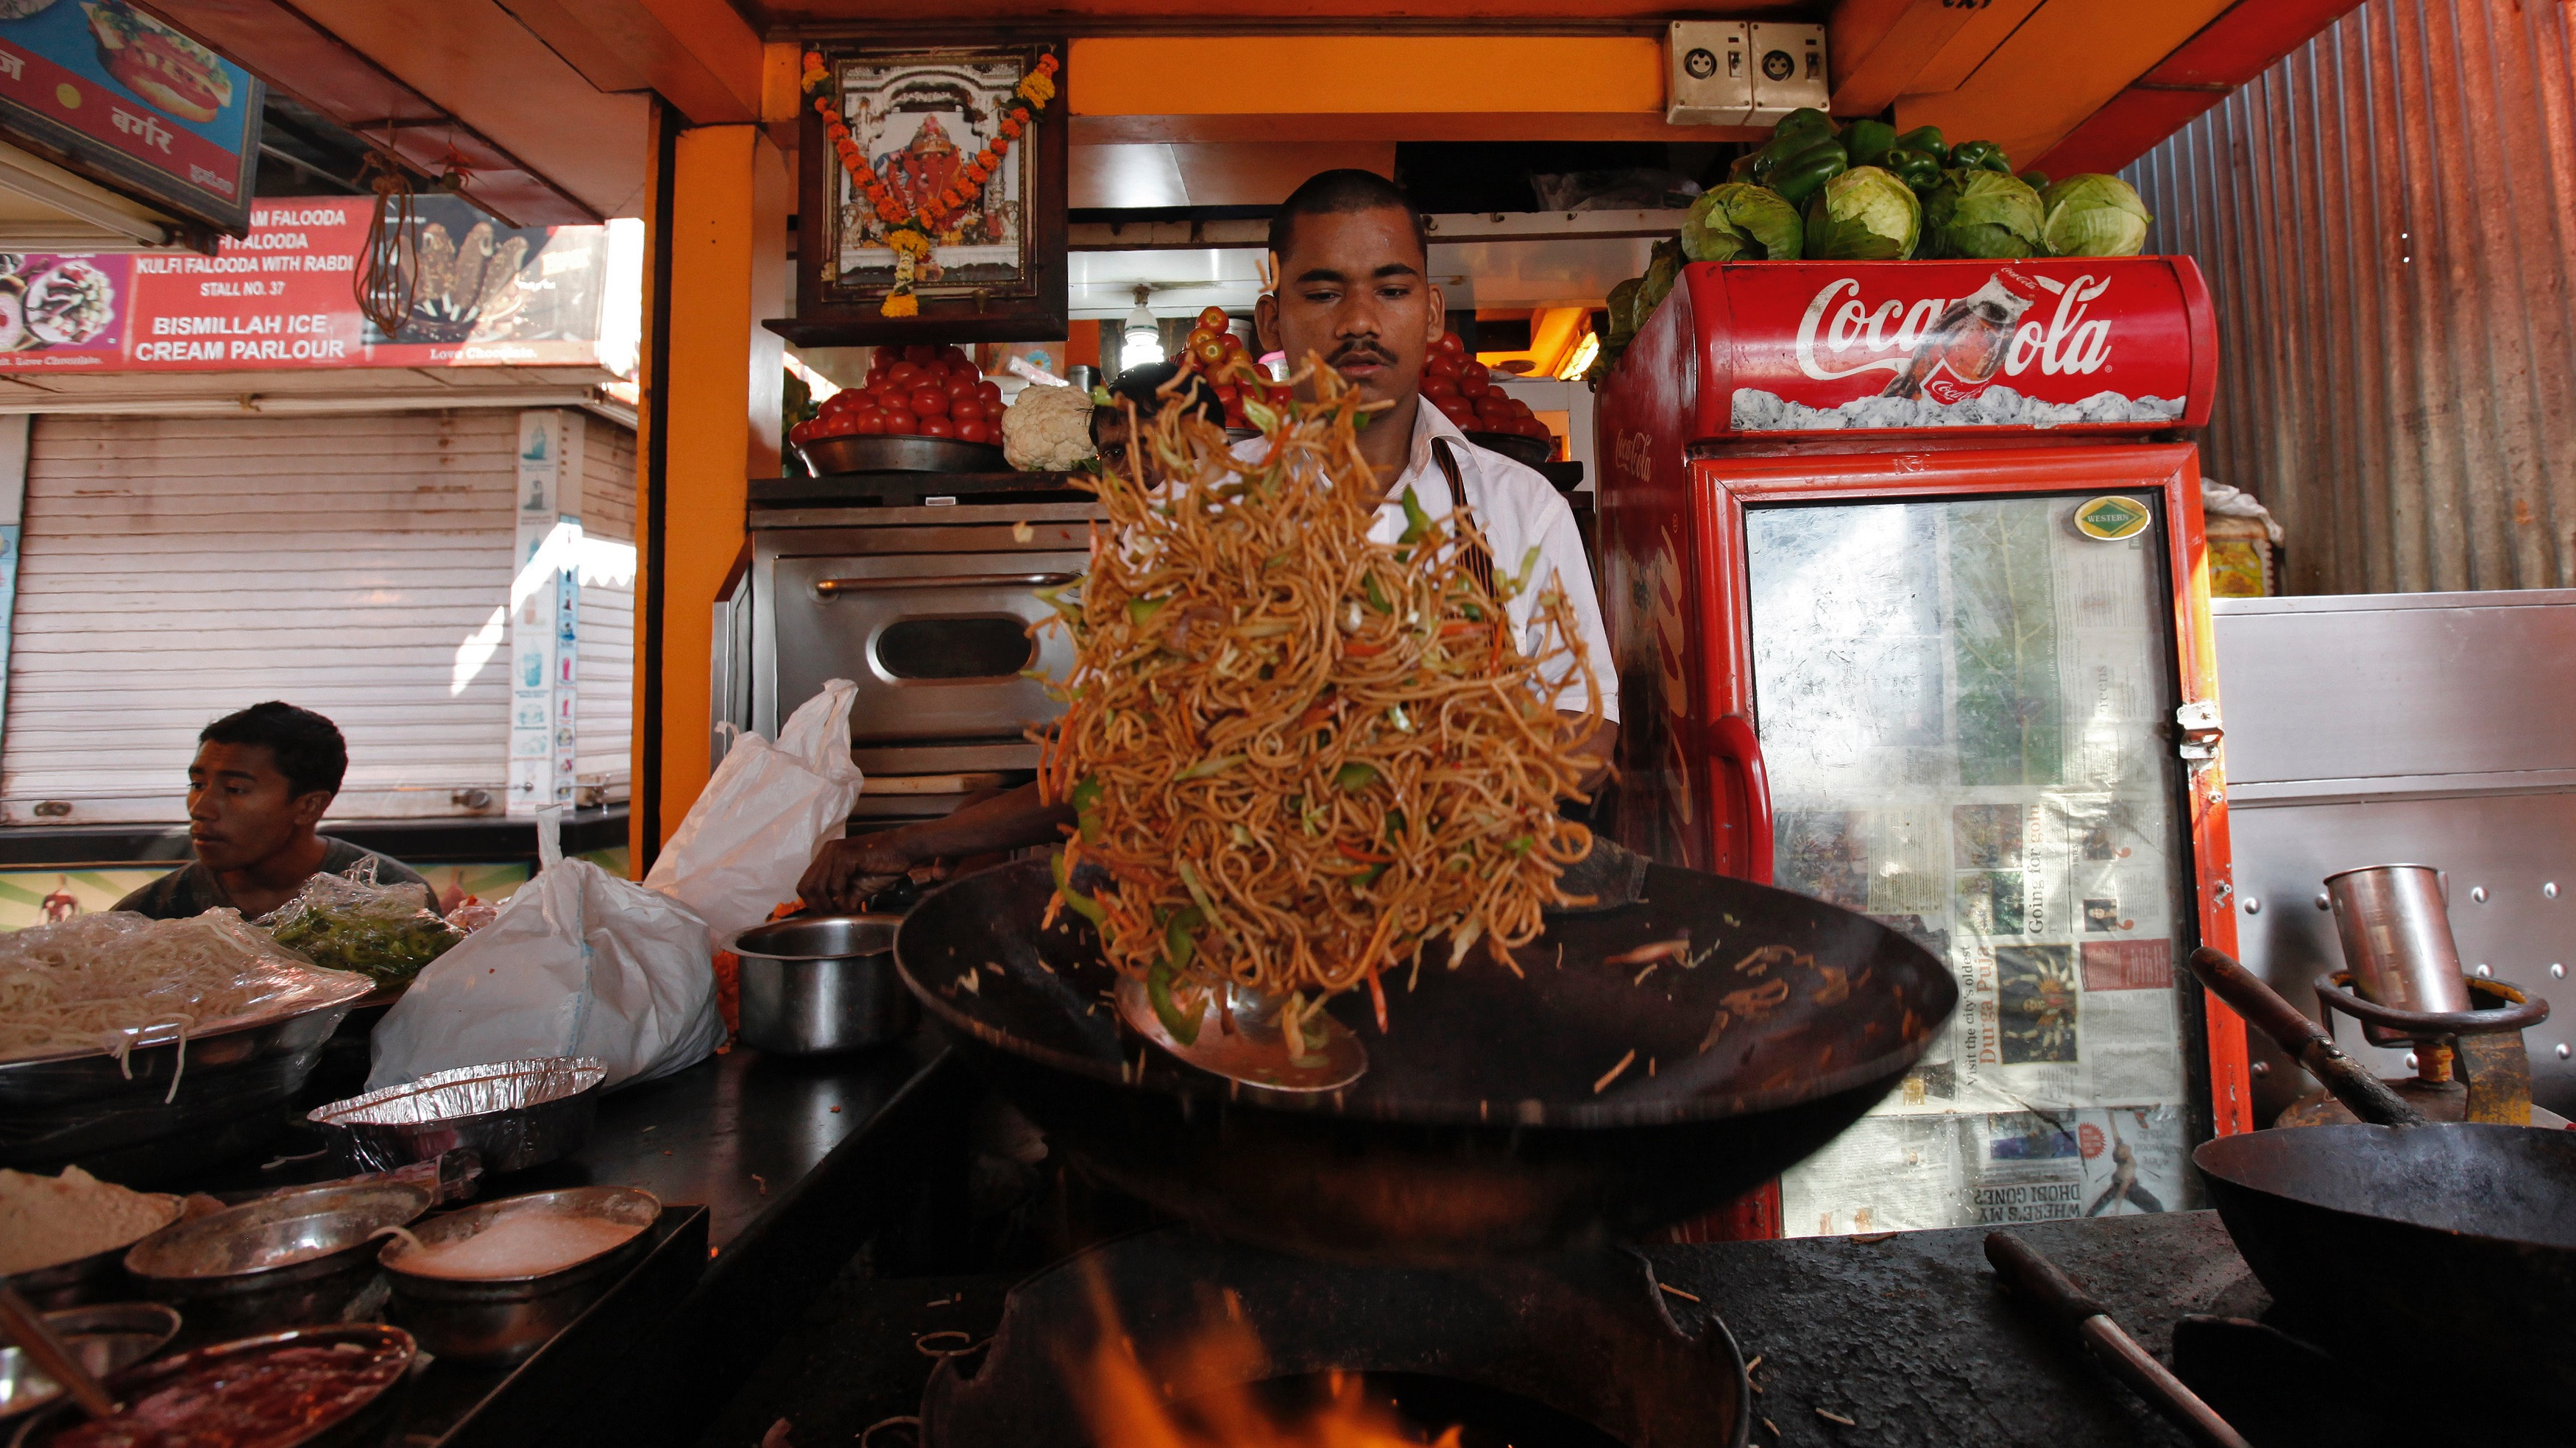 A cook makes vegetable chowmein containing onions at a beachside restaurant in Mumbai January 28, 2011. Onions are base ingredients for almost all Indian dishes. Soaring prices of the vegetable have helped dislodge Indian state governments in the past, and rising food costs often spark street protests in a country where over 40 percent of the 1.2 billion population lives on under $1.25 per day. To match Feature INDIA-FOOD/ REUTERS/Danish Siddiqui (INDIA - Tags: FOOD SOCIETY EMPLOYMENT BUSINESS AGRICULTURE) - RTXX6GK